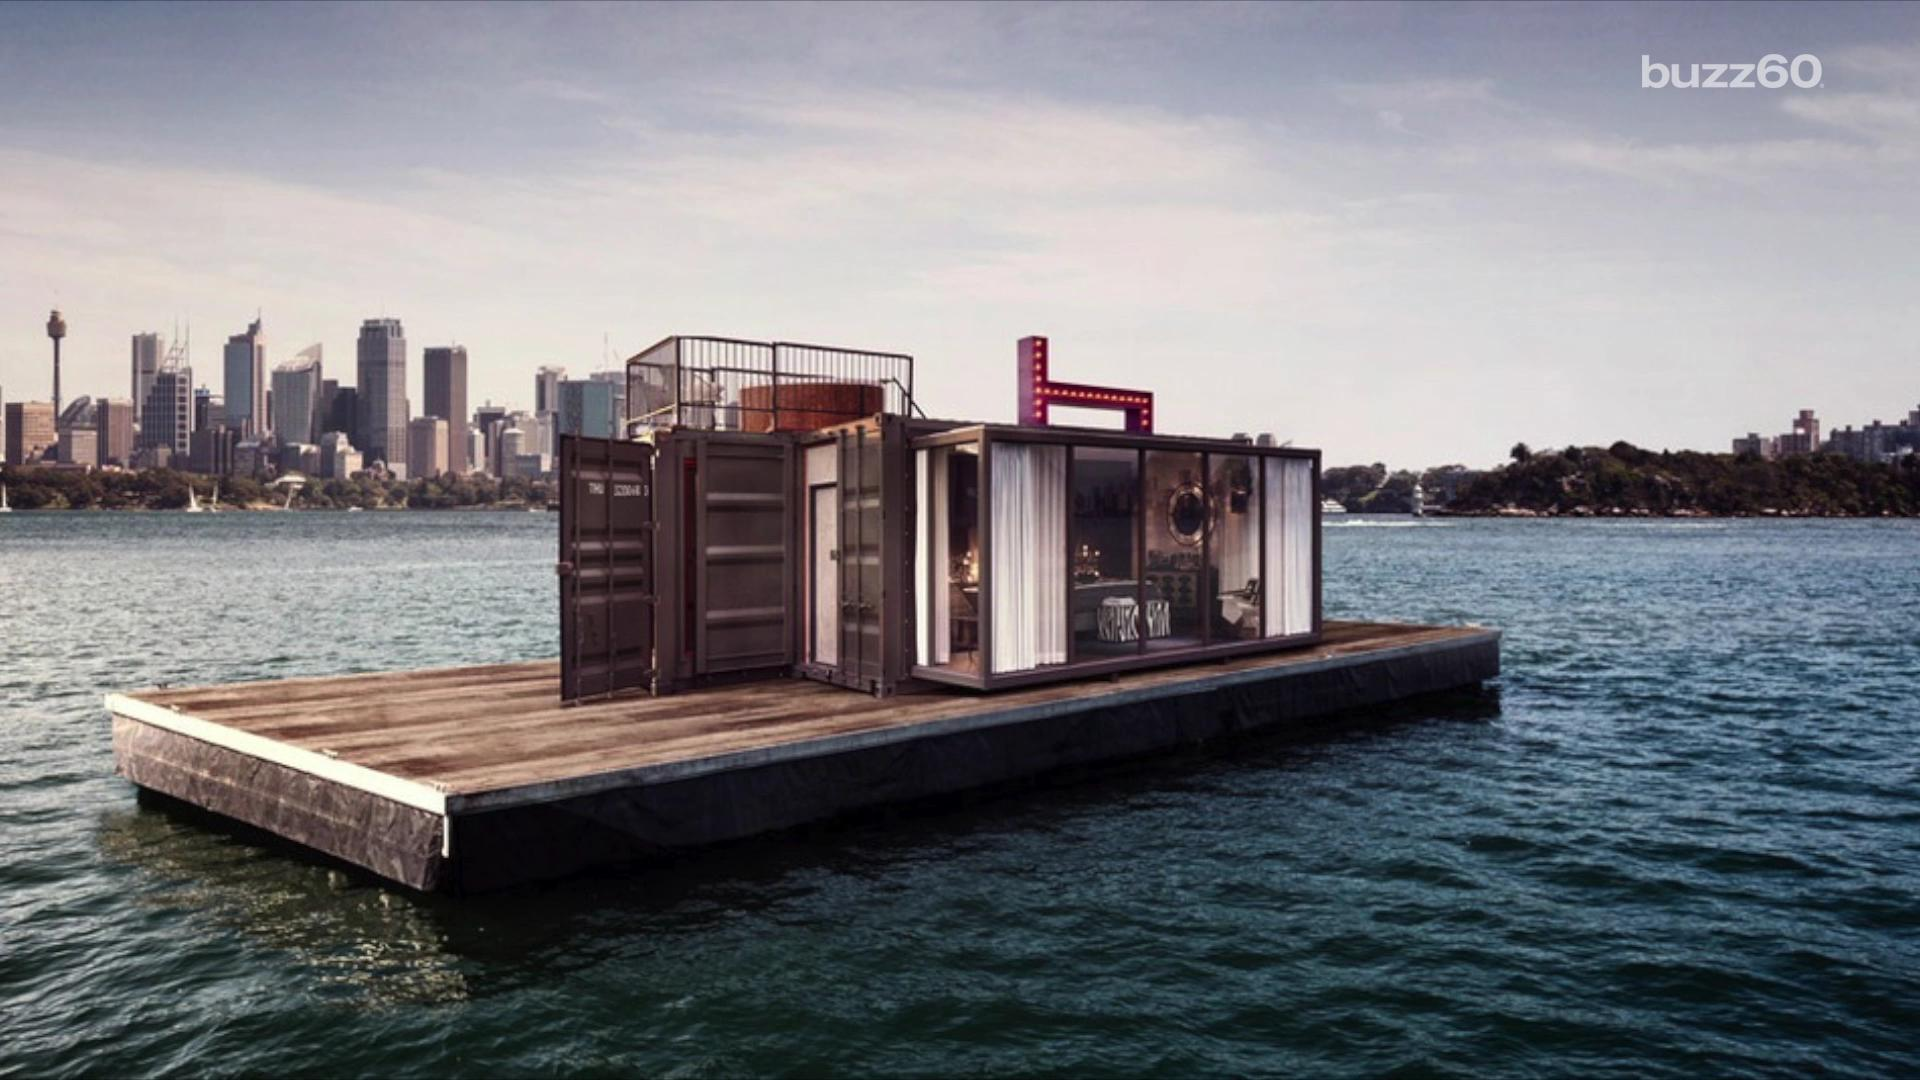 This floating hotel in Sydney Harbor is what dreams are made of